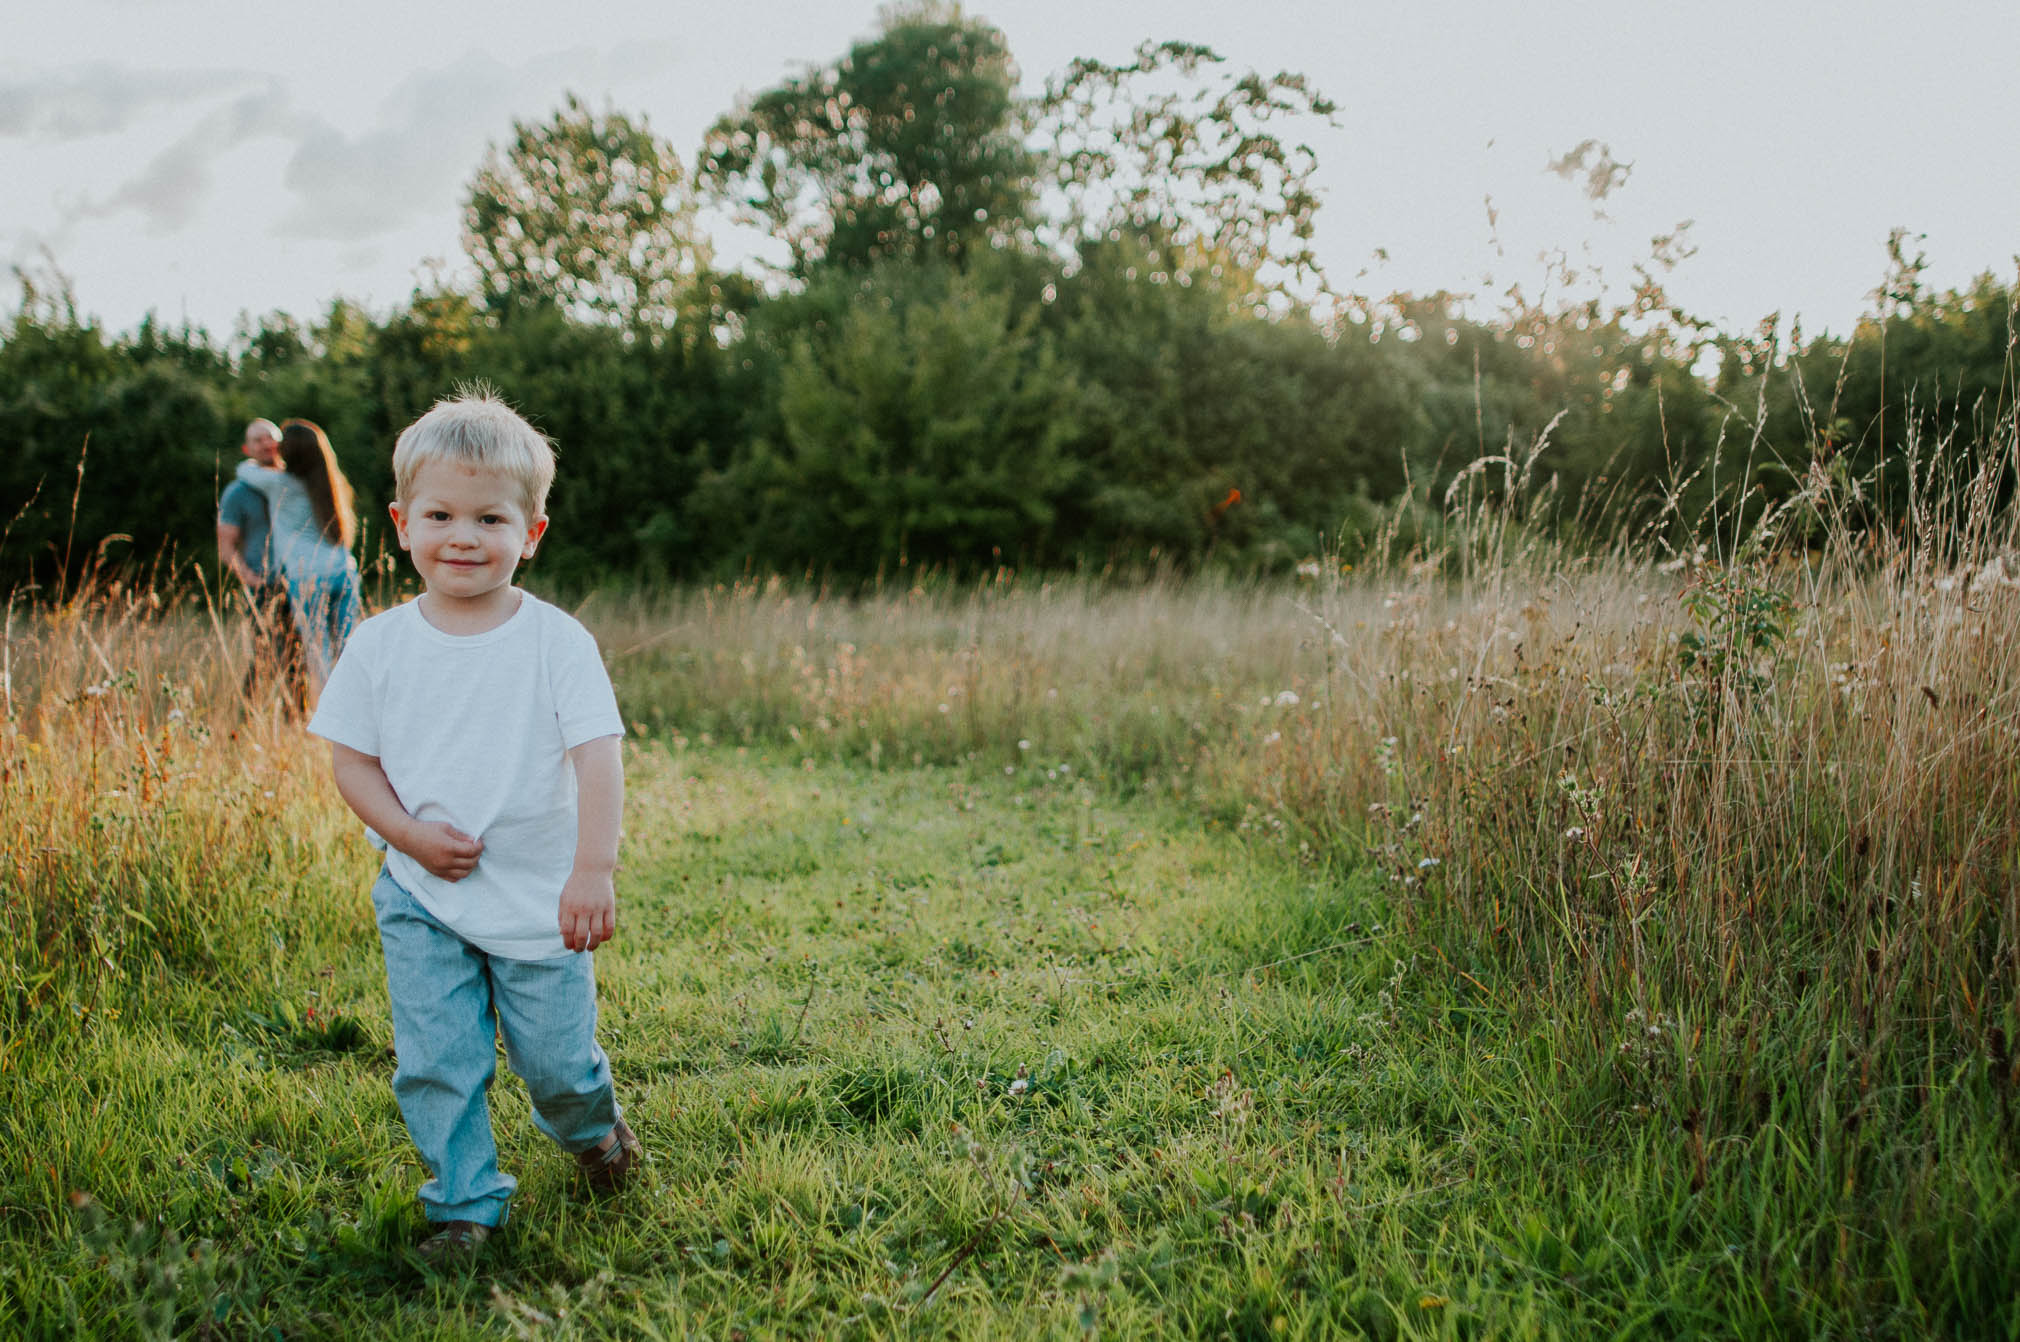 www.purplepeartreephotography.com Essex portrait photographer Famil & lifestyle photographyJPG (11).JPG